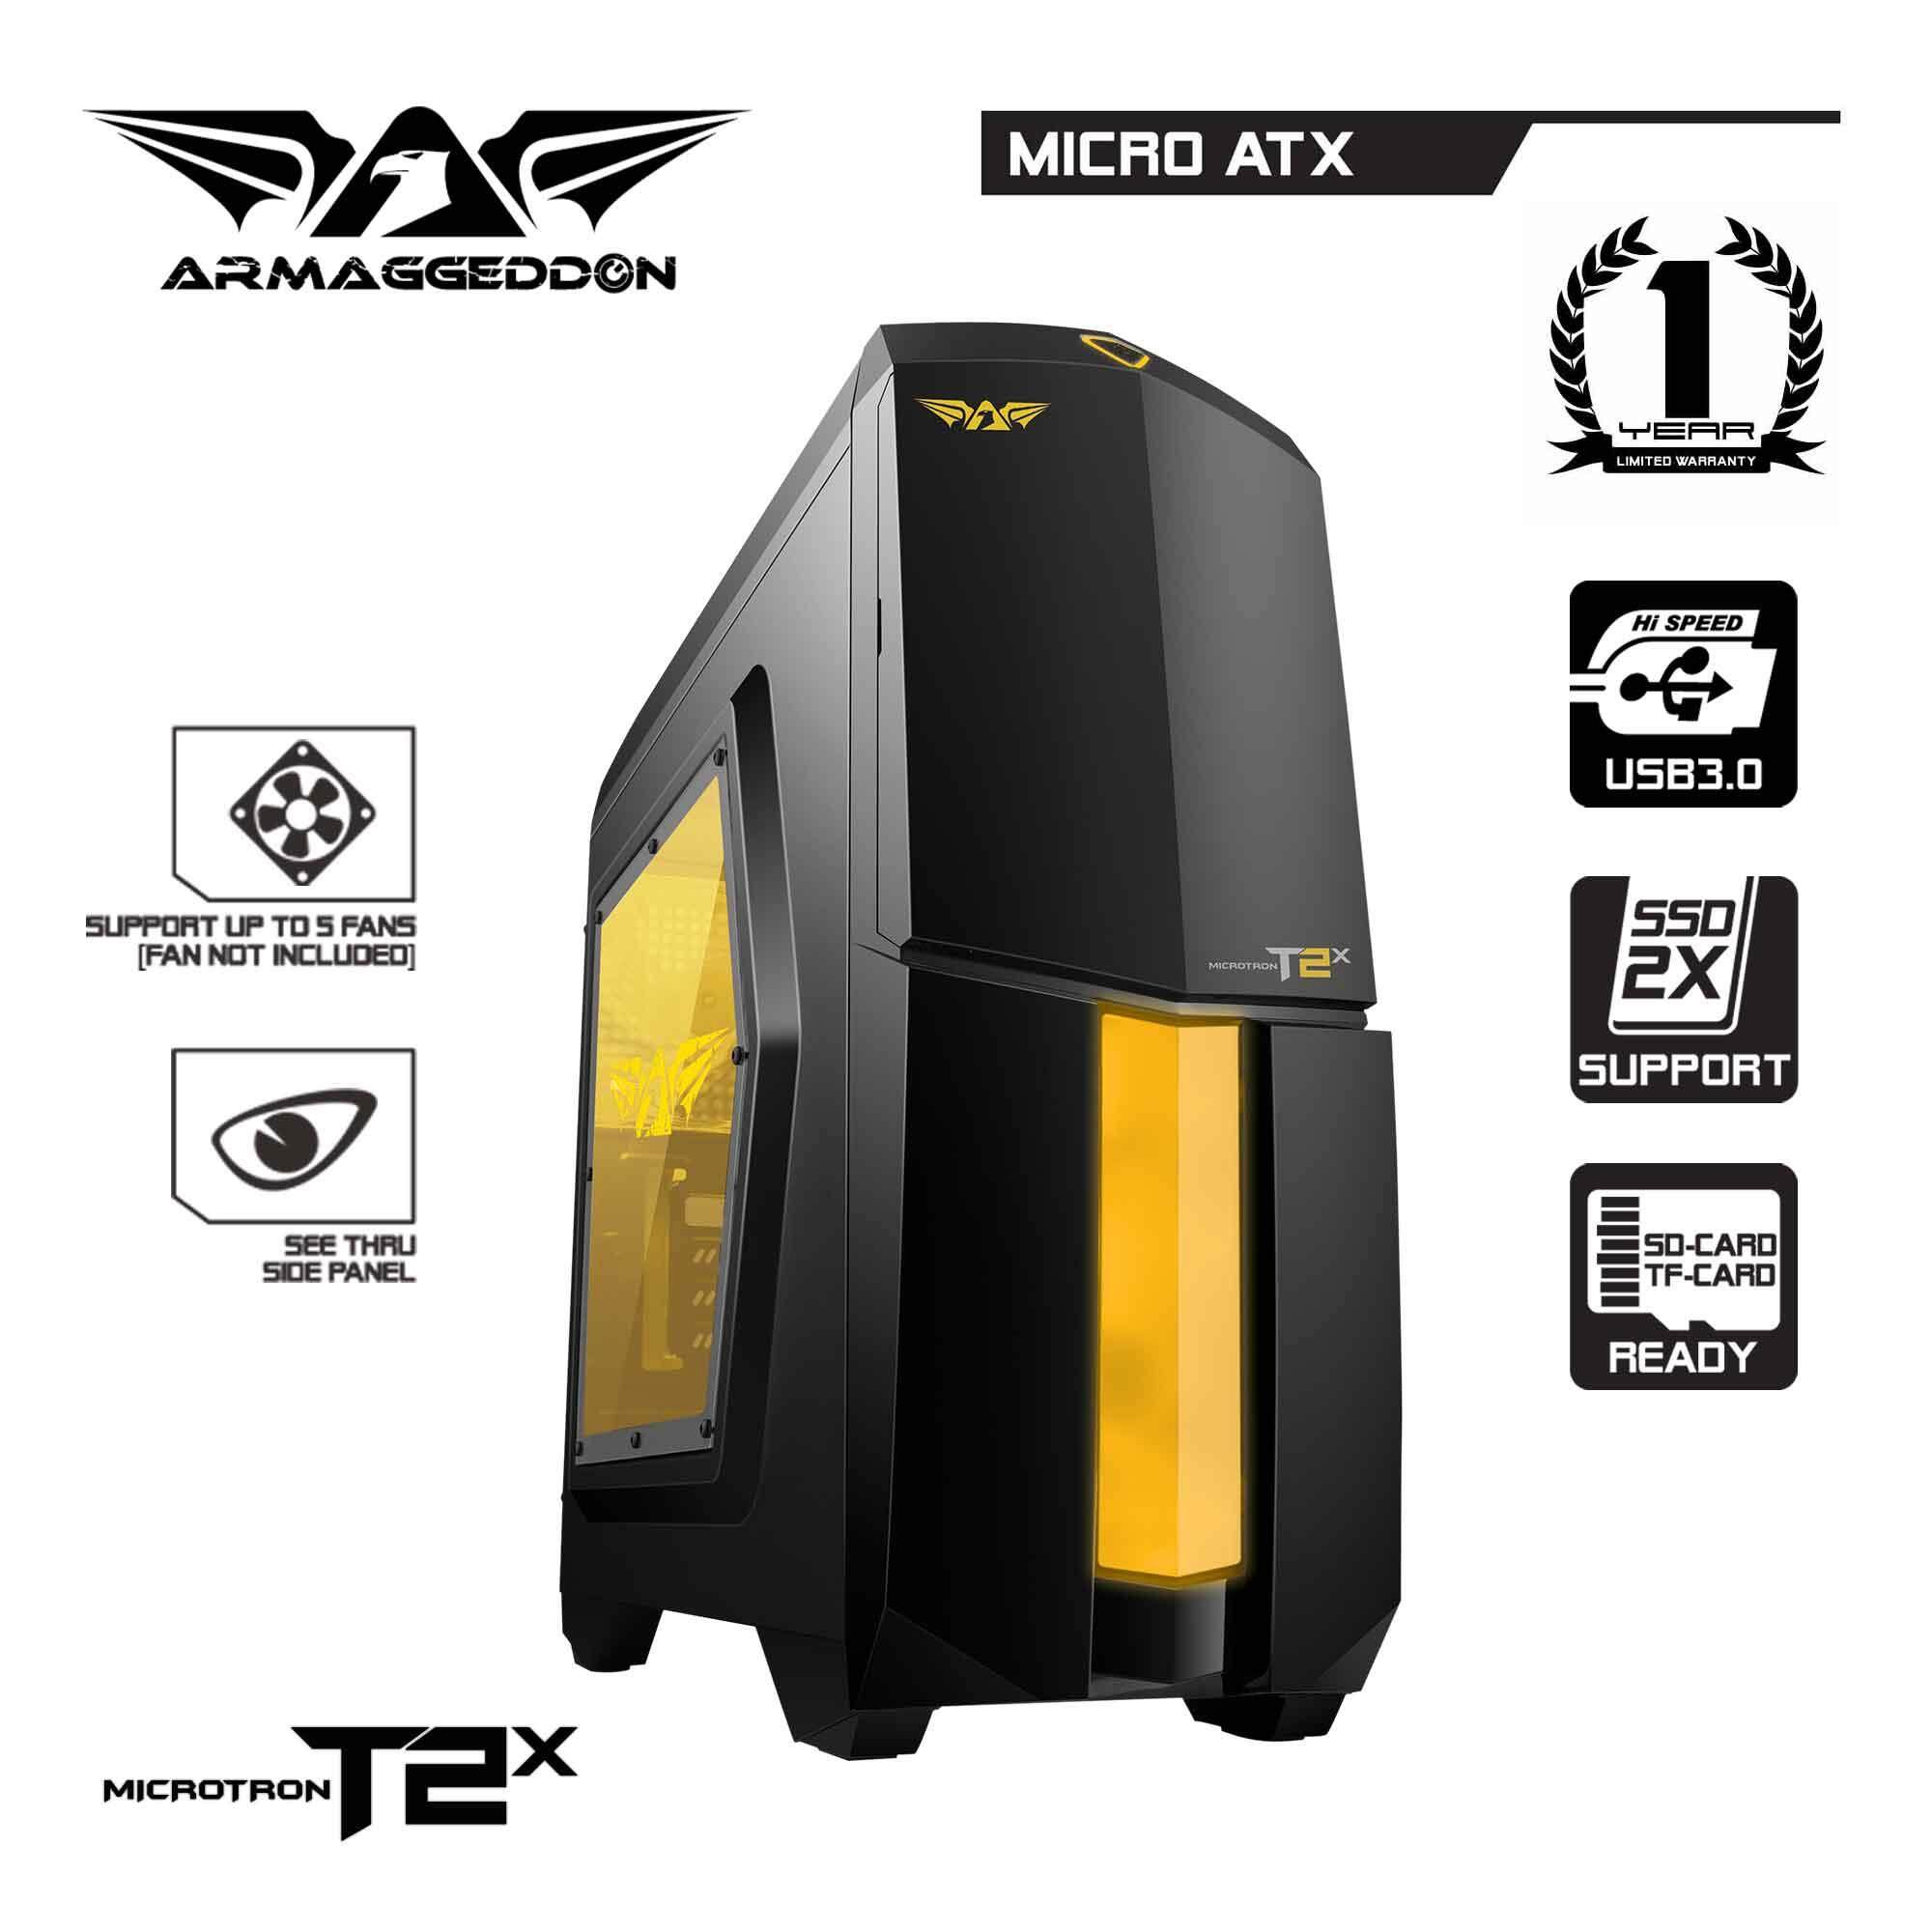 (CLEARANCE) Armaggeddon Microtron T2x Micro ATX Gaming PC Chassis - Support SSD and High End Graphic Card Malaysia